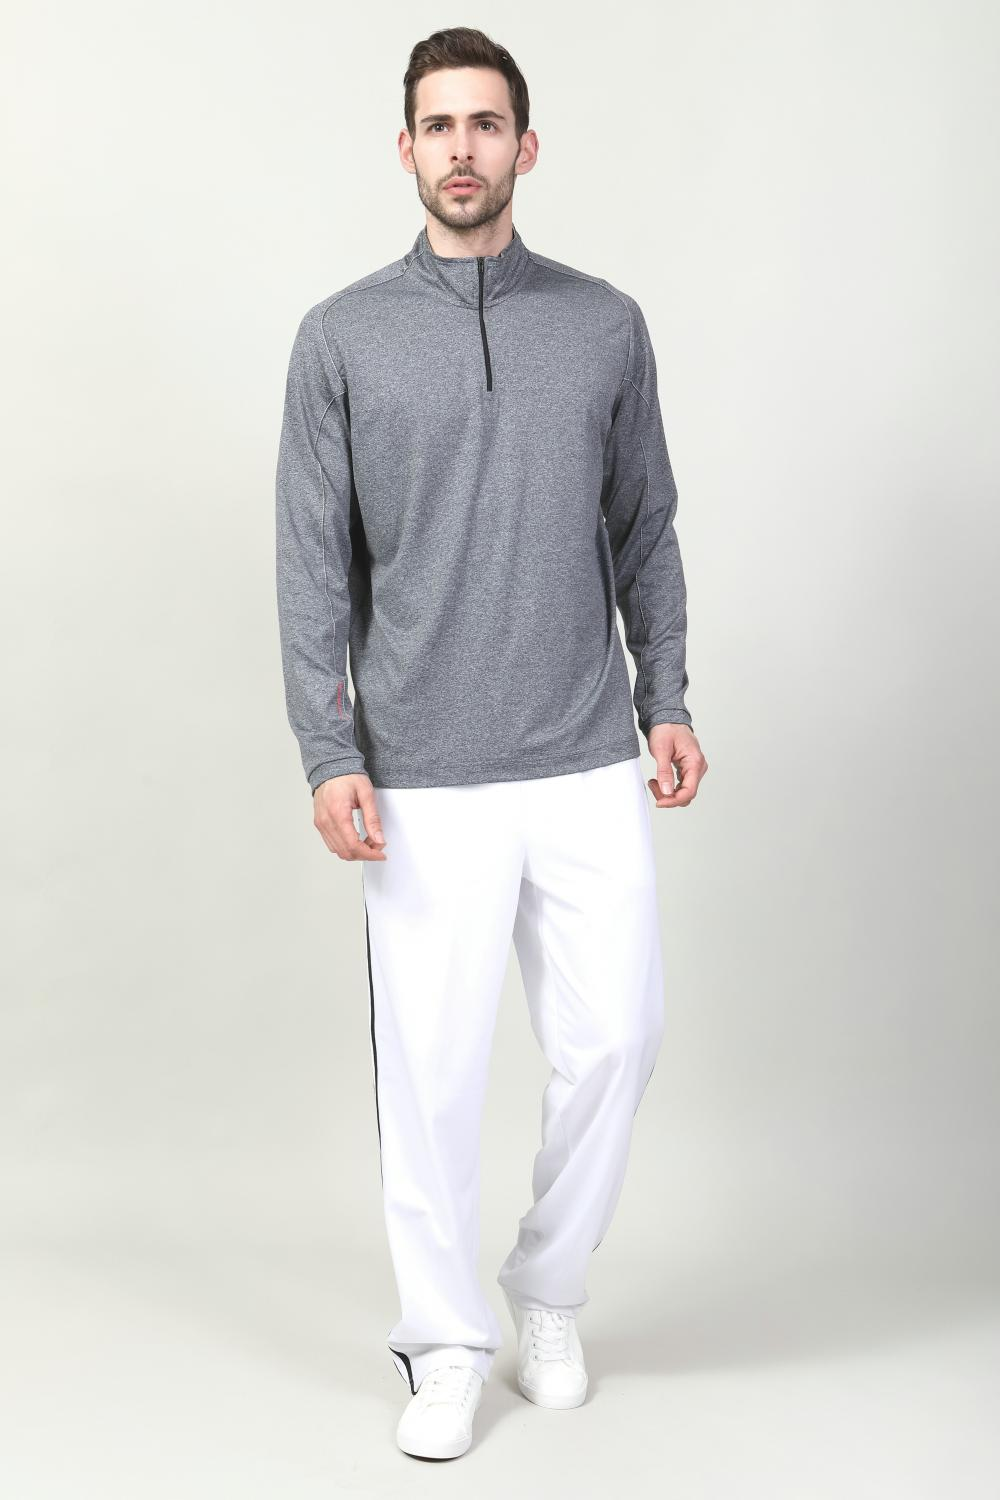 trackpants to match golfer top